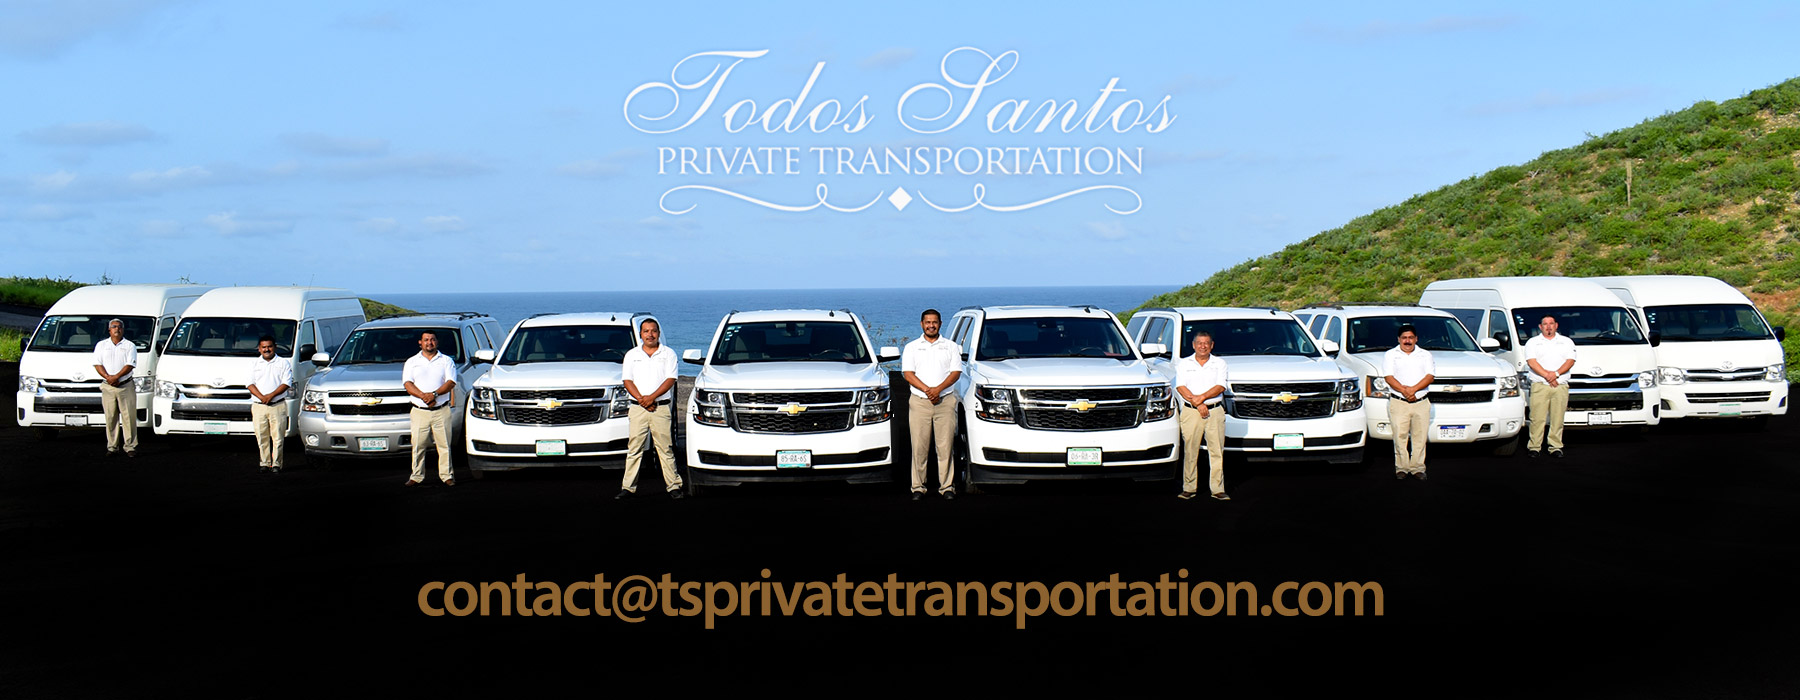 Todos Santos Private Transportation